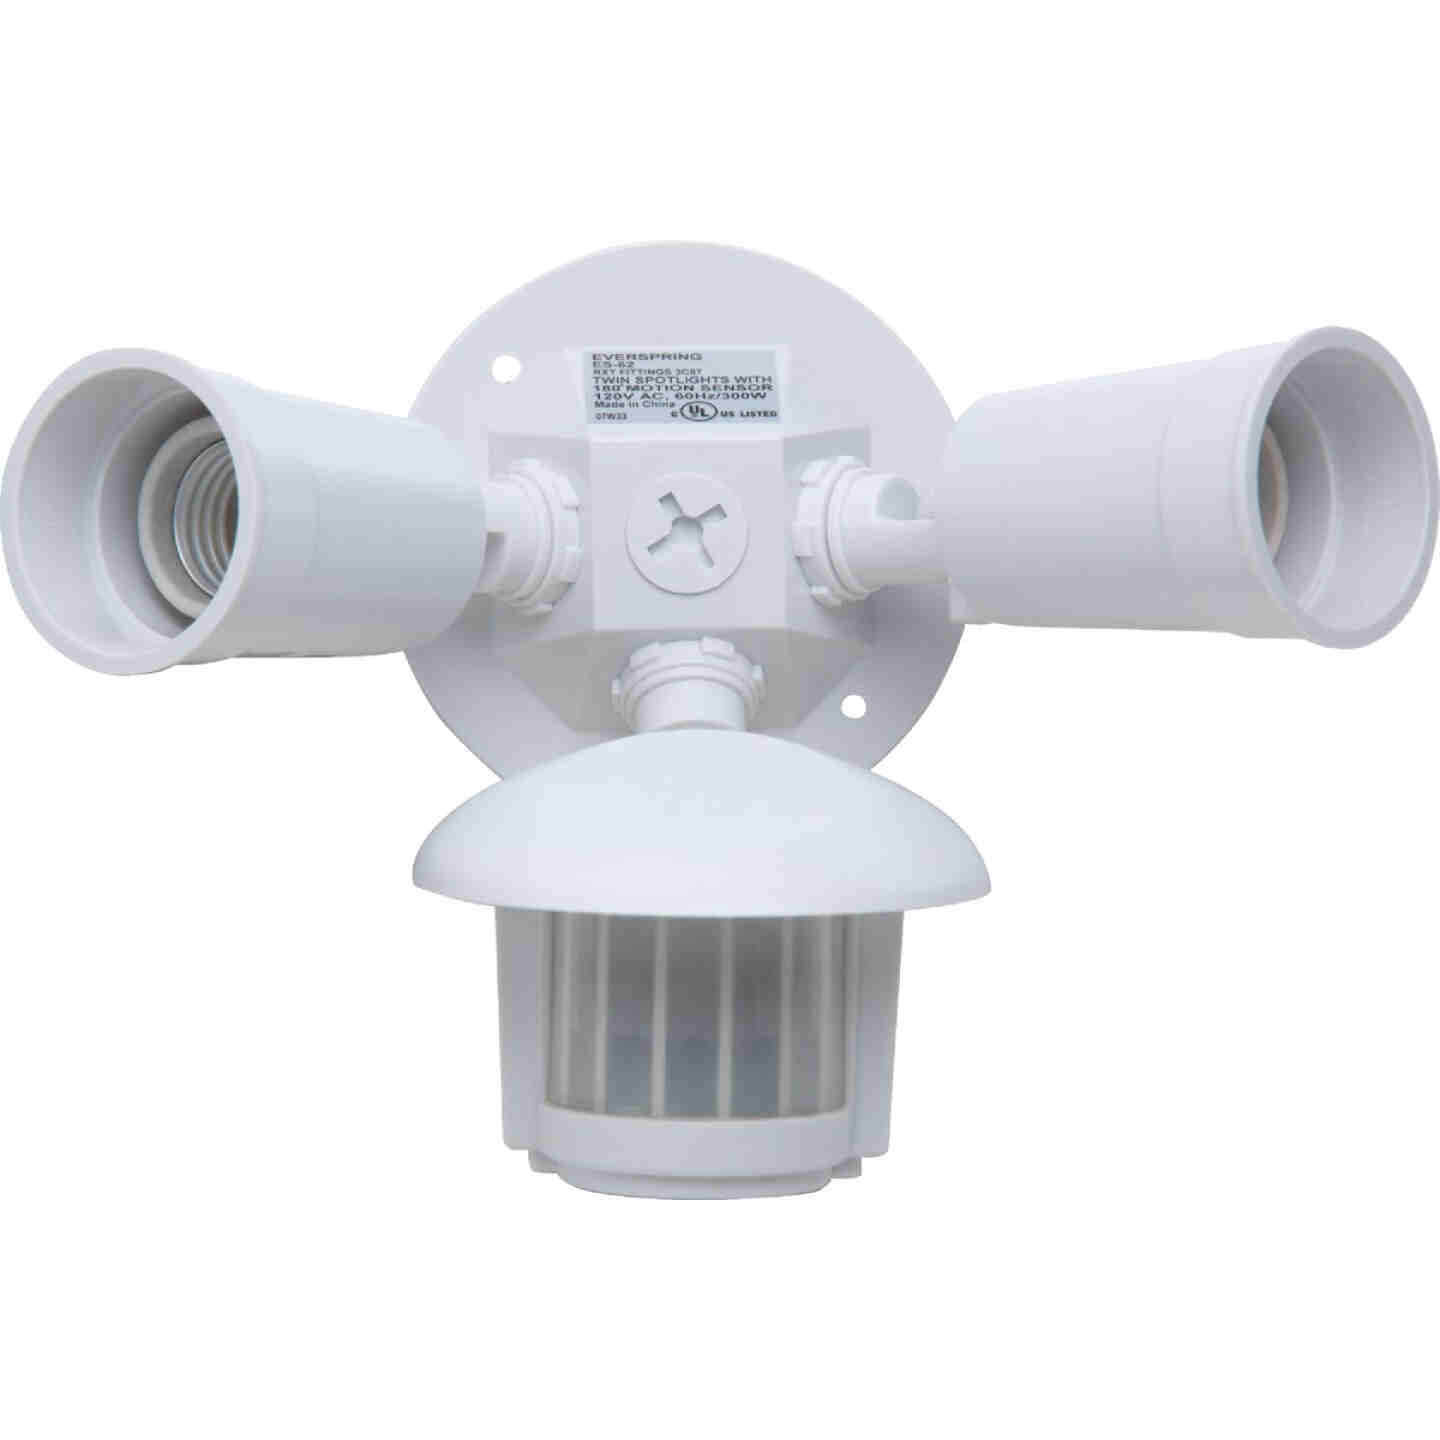 White Motion Sensing Dusk To Dawn Incandescent Floodlight Fixture Image 3